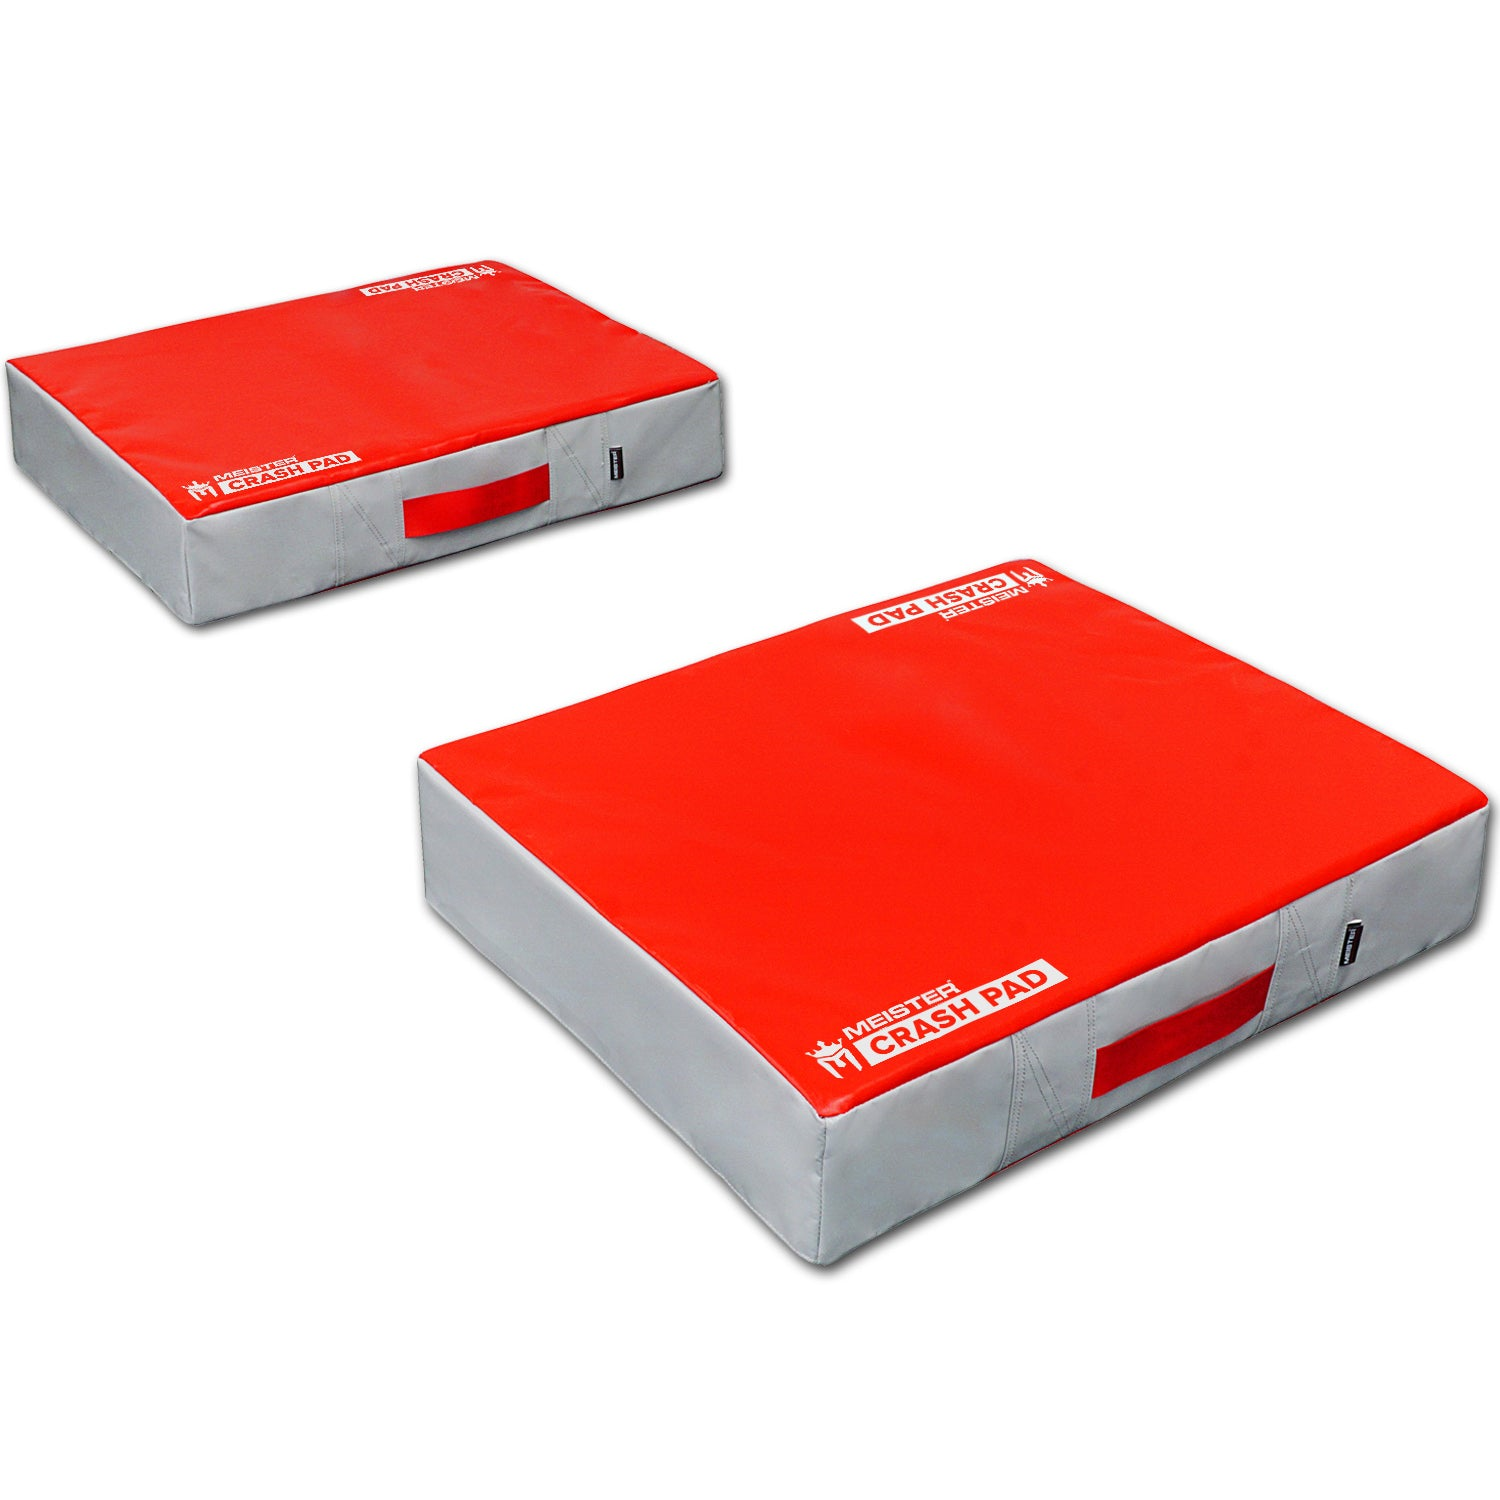 Meister Crash Pad Weight Lifting Drop Pads - Red/Gray (Pair)